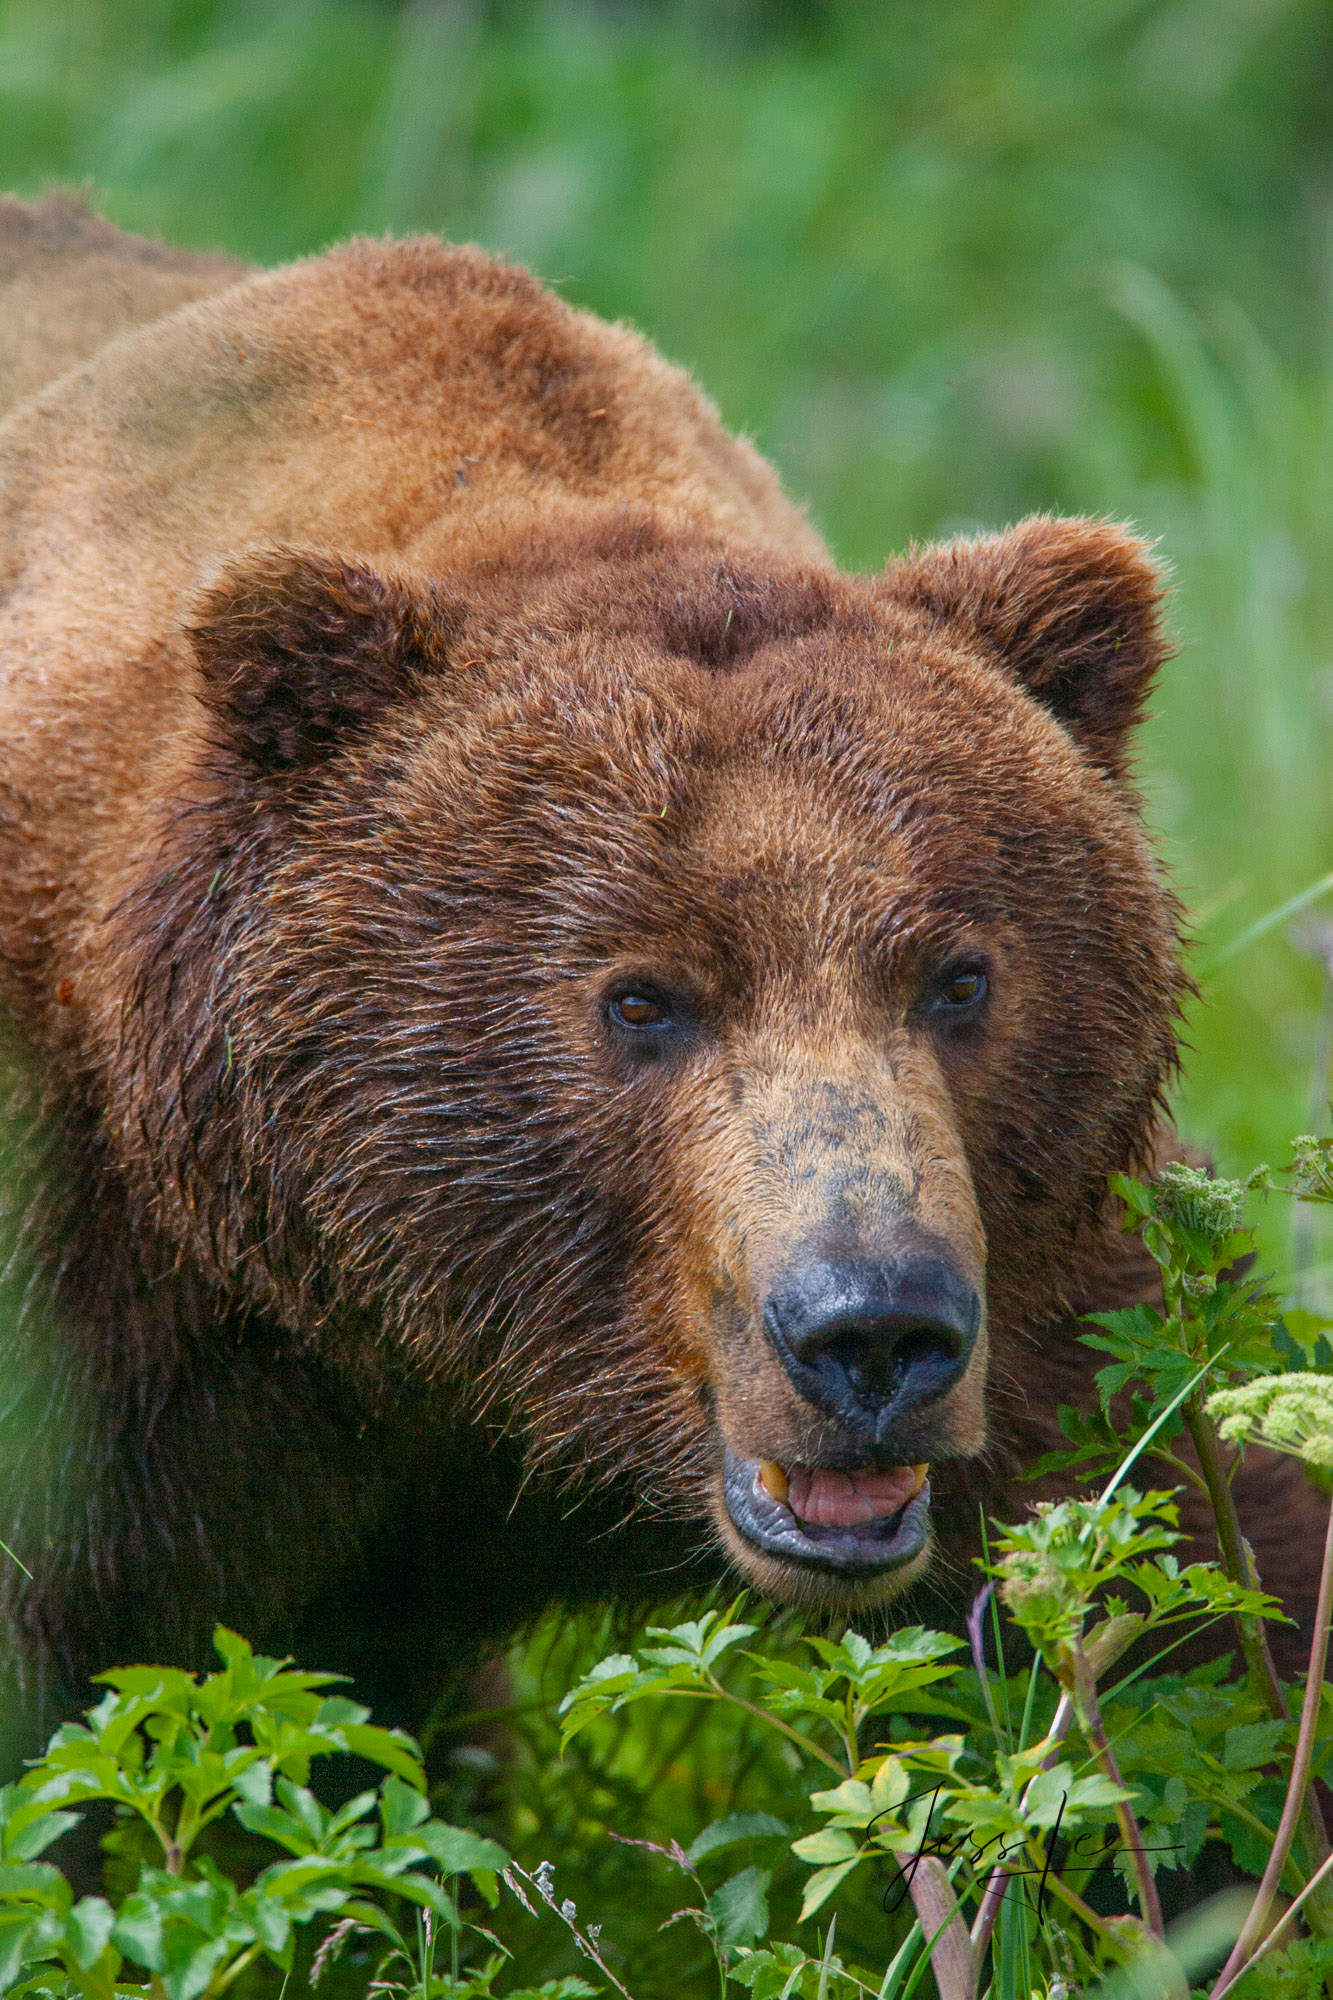 These Grizzly bear fine art wildlife photographs are offered as high-quality prints for sale as created by Jess Lee. My prints...